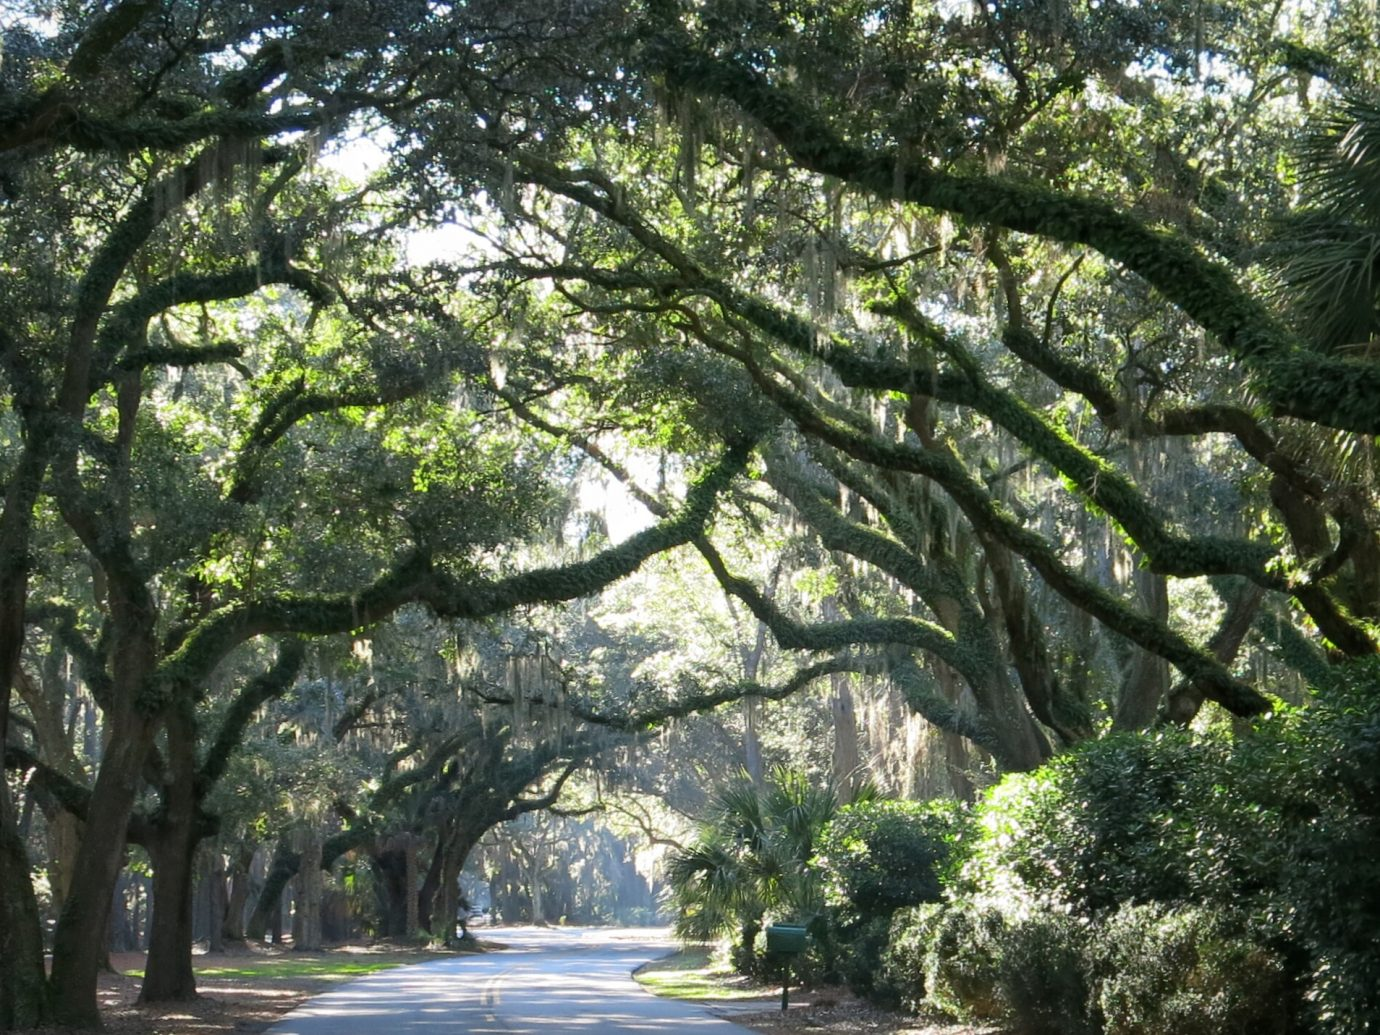 Beautiful Live Oak Trees Canopy Hilton Head Island Road, South Carolina